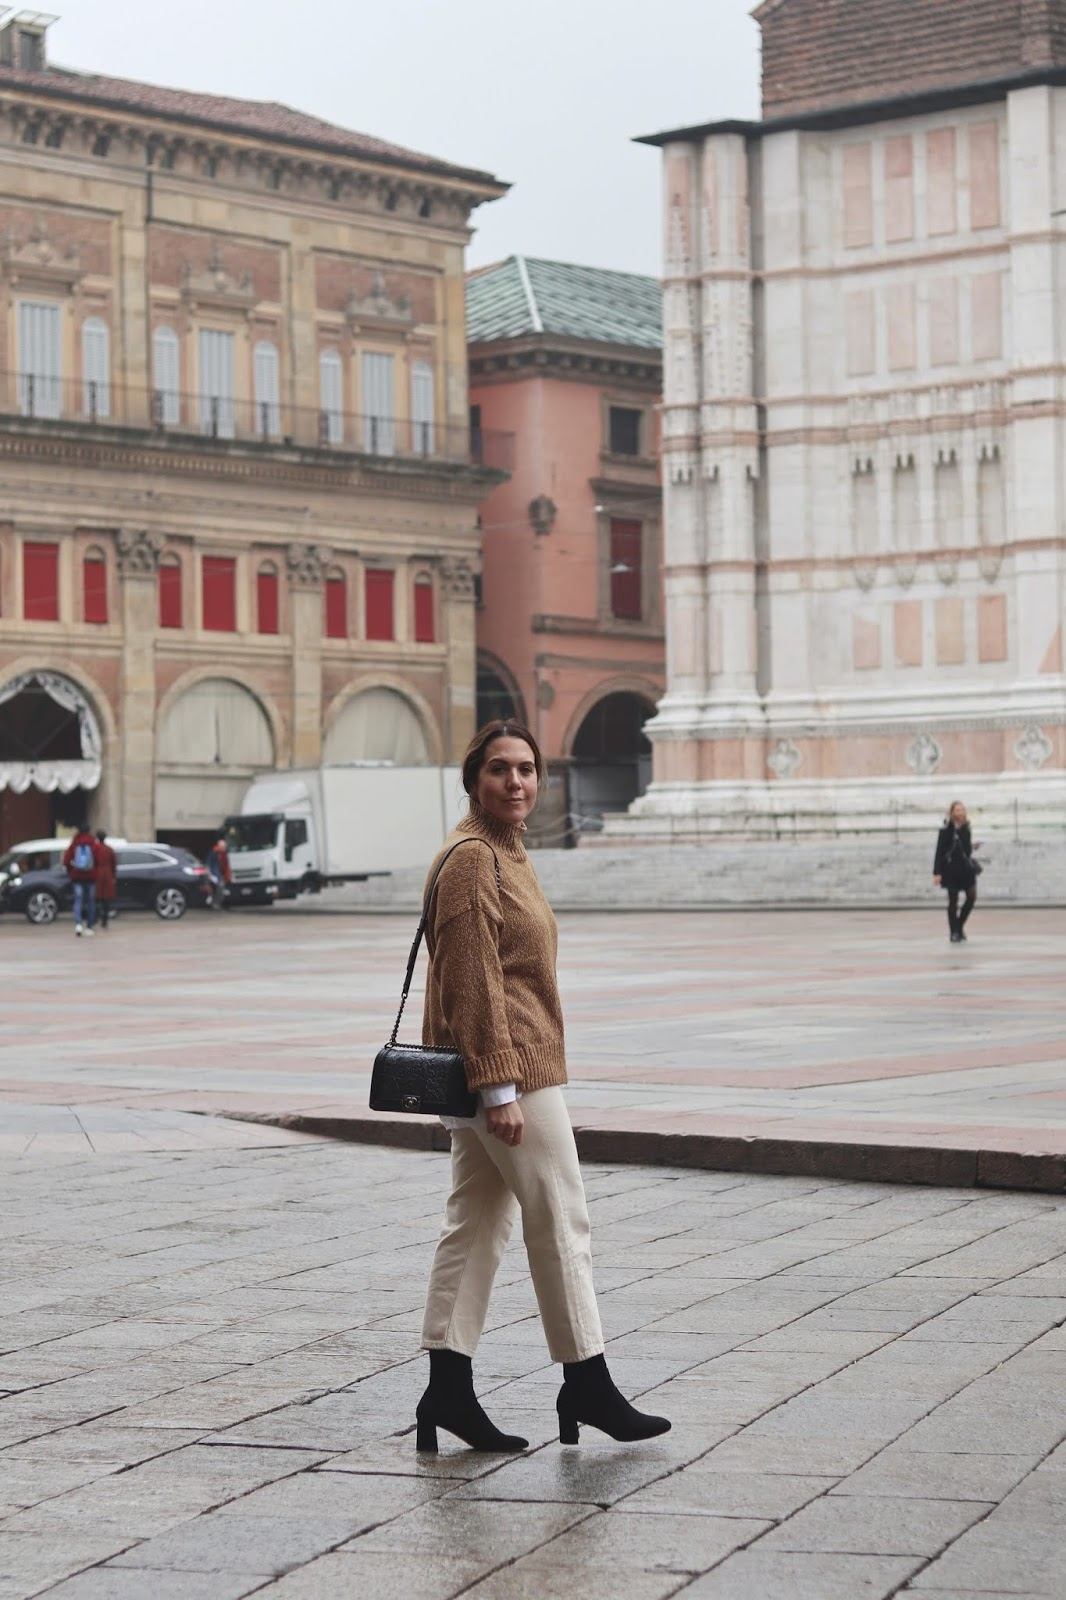 hm turtleneck sweater beige pants winter outfit aleesha harris bologna italy